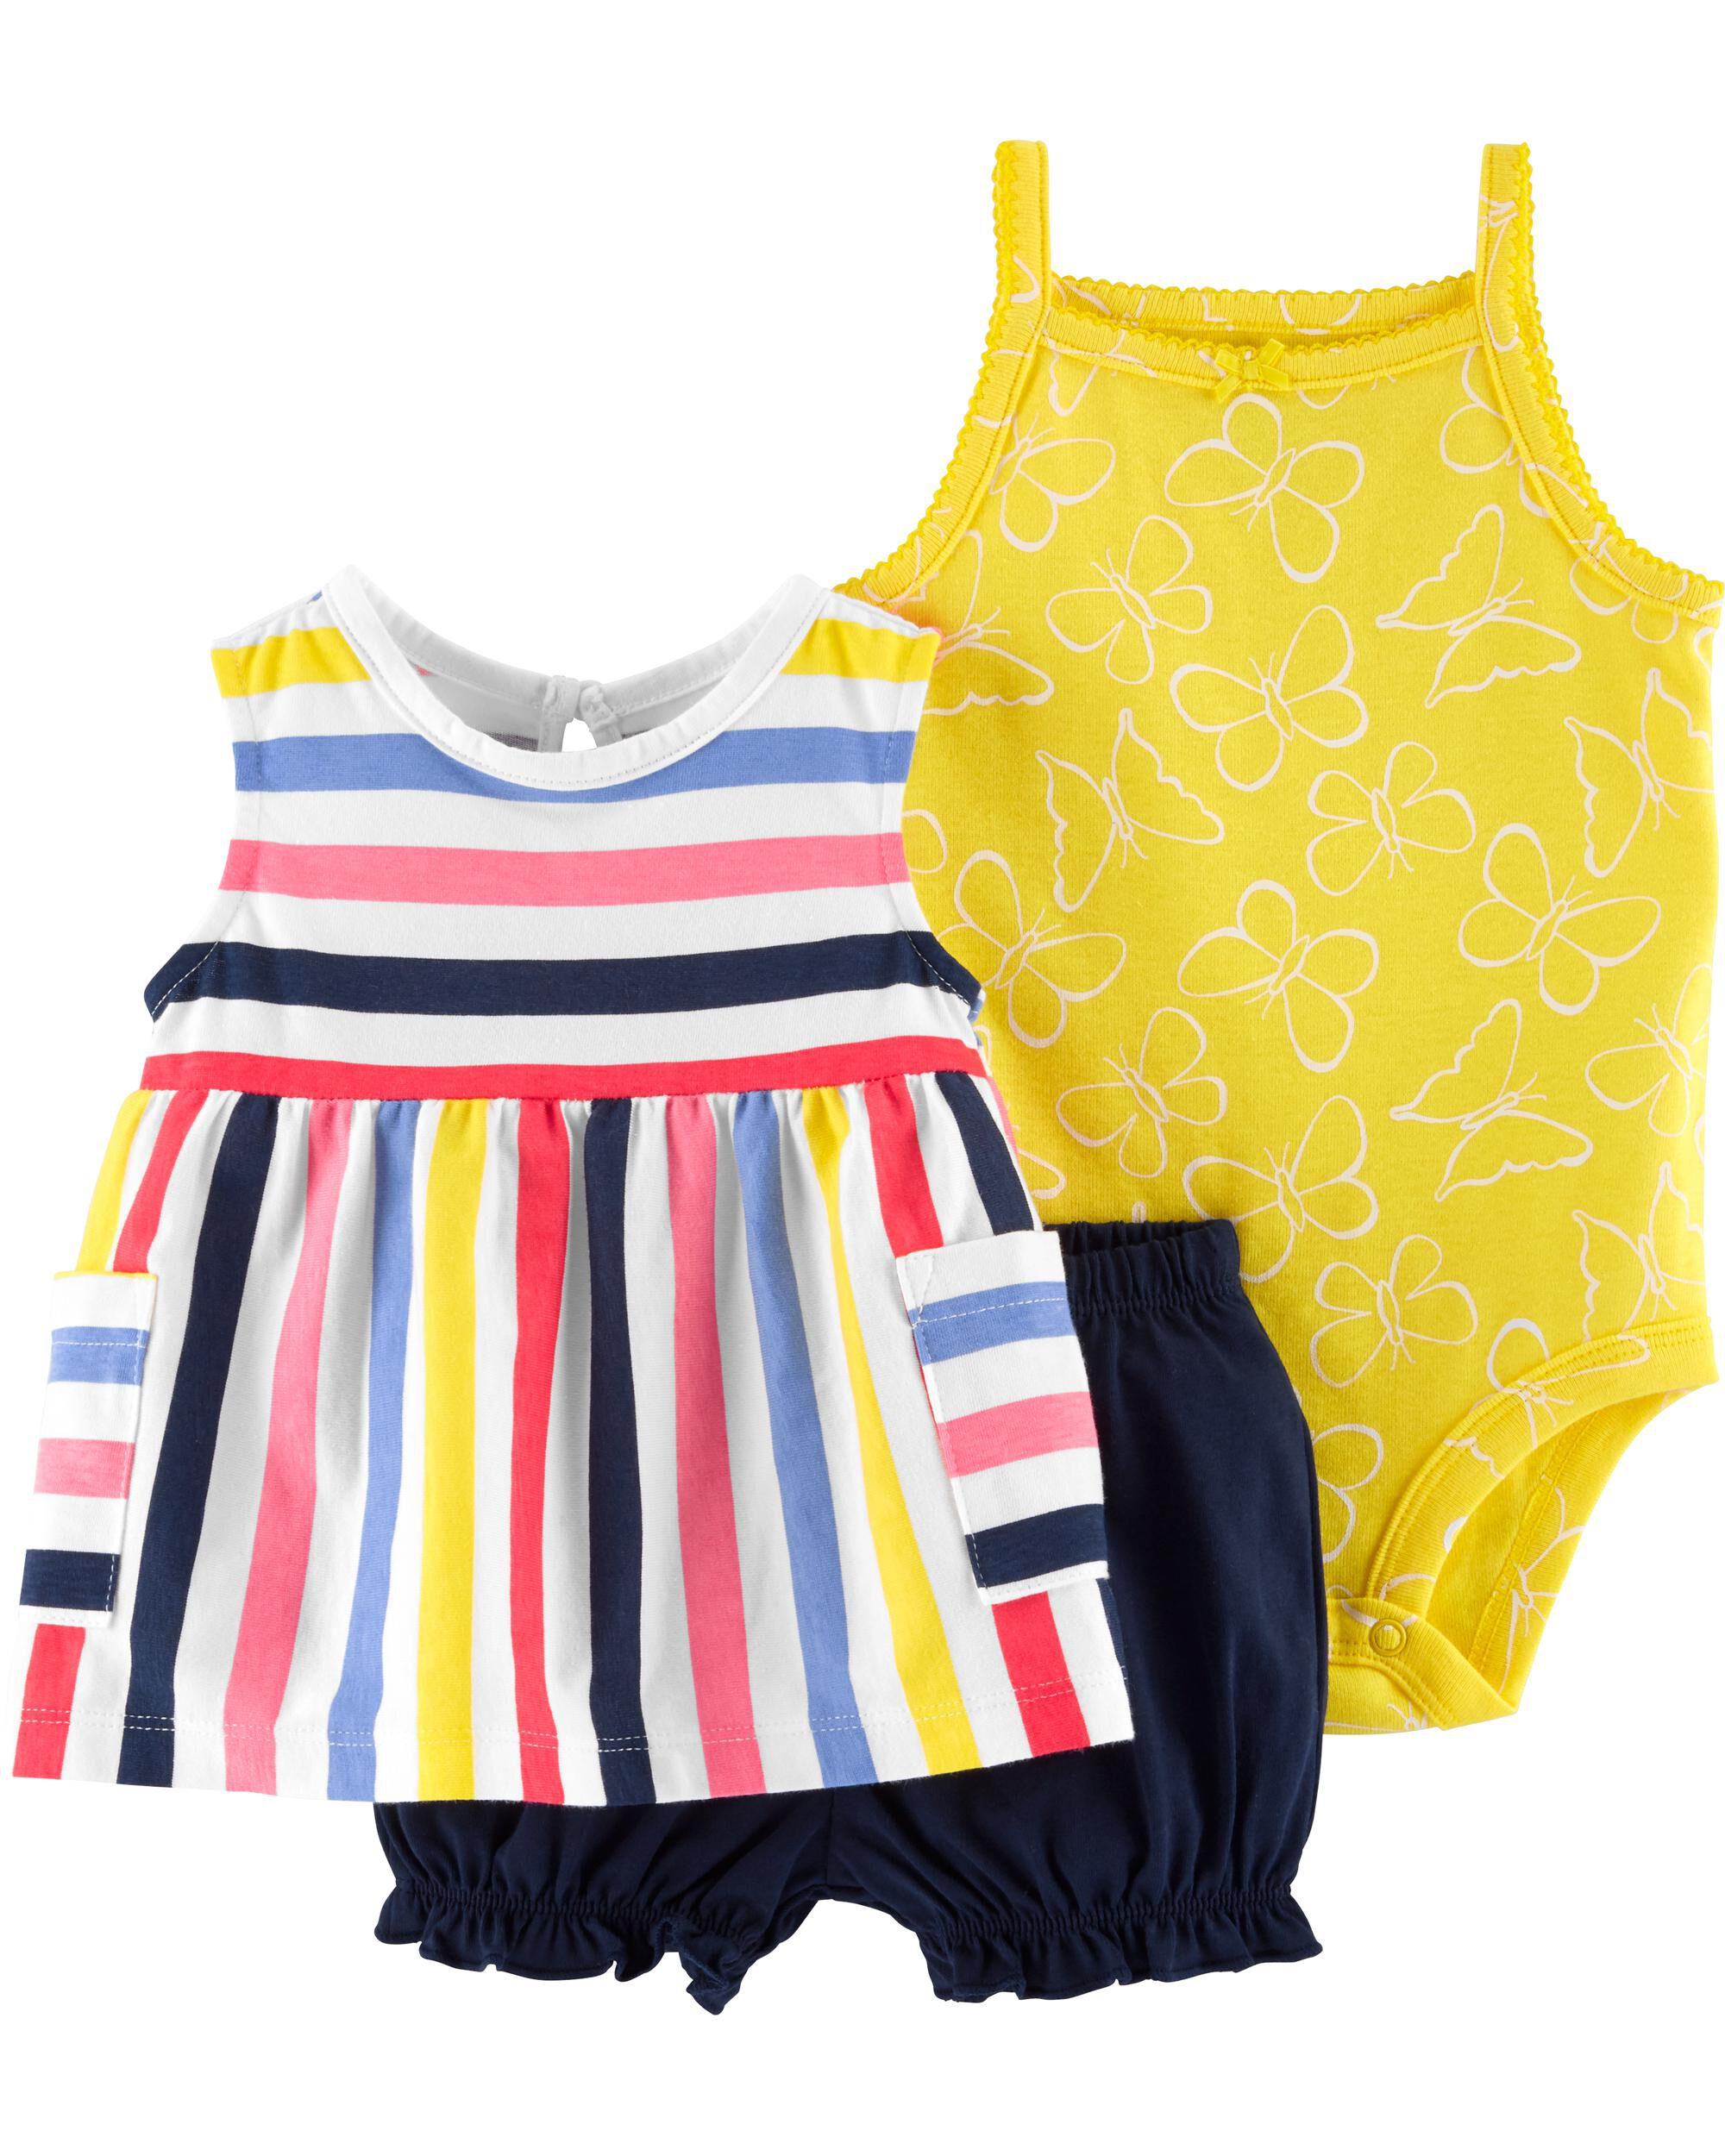 *DOORBUSTER* 3-Piece Striped Little Short Set